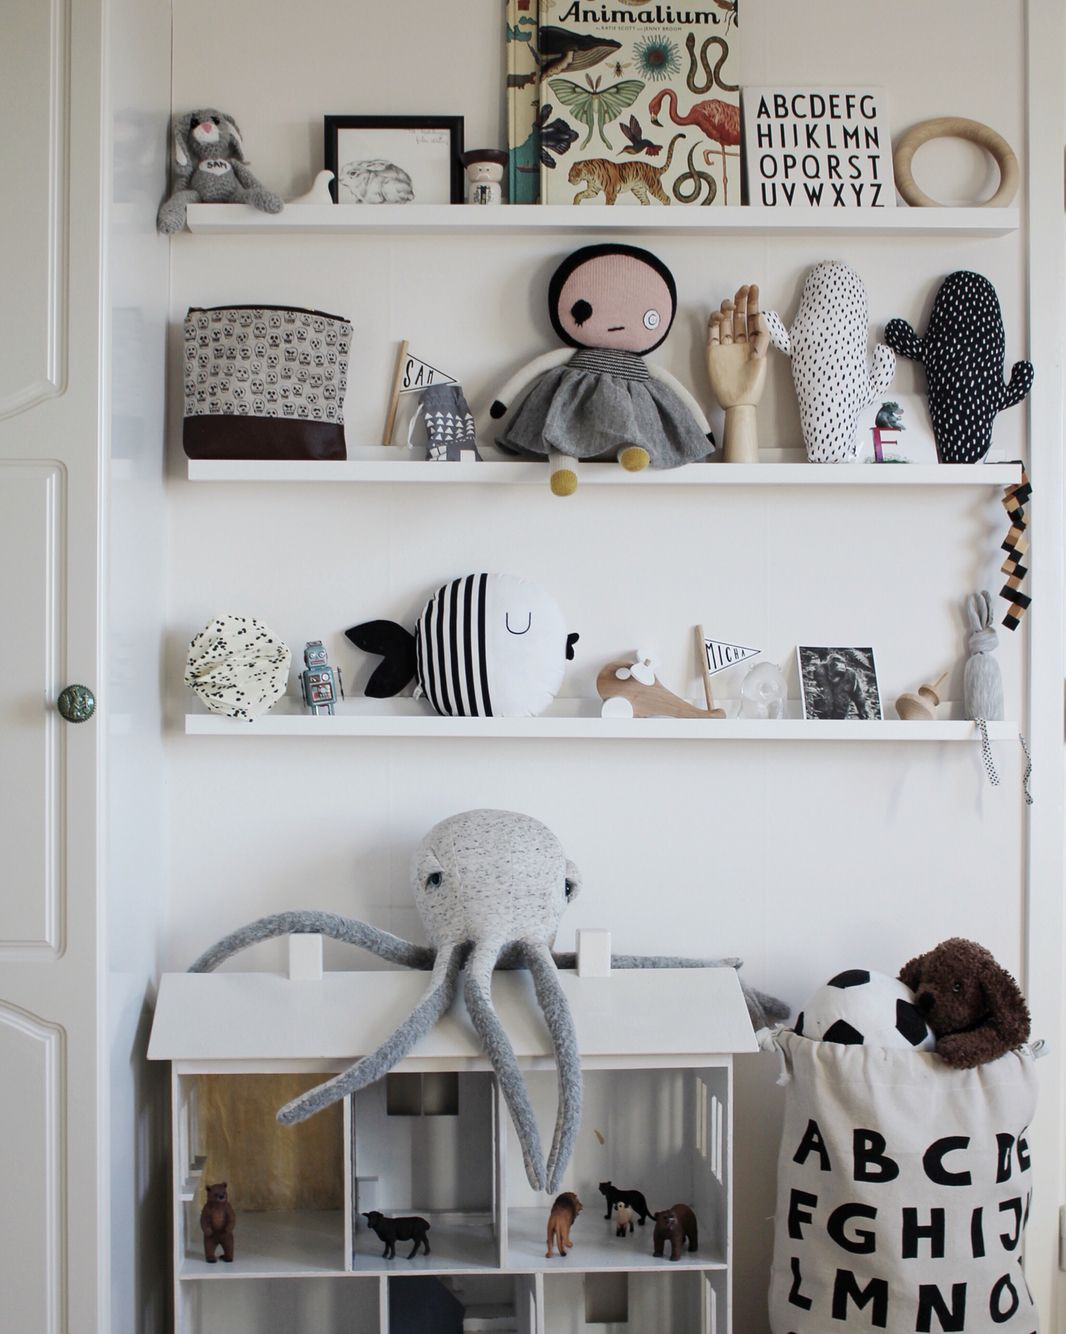 Kids rooms shelving and storage display for toys room style also pinterest